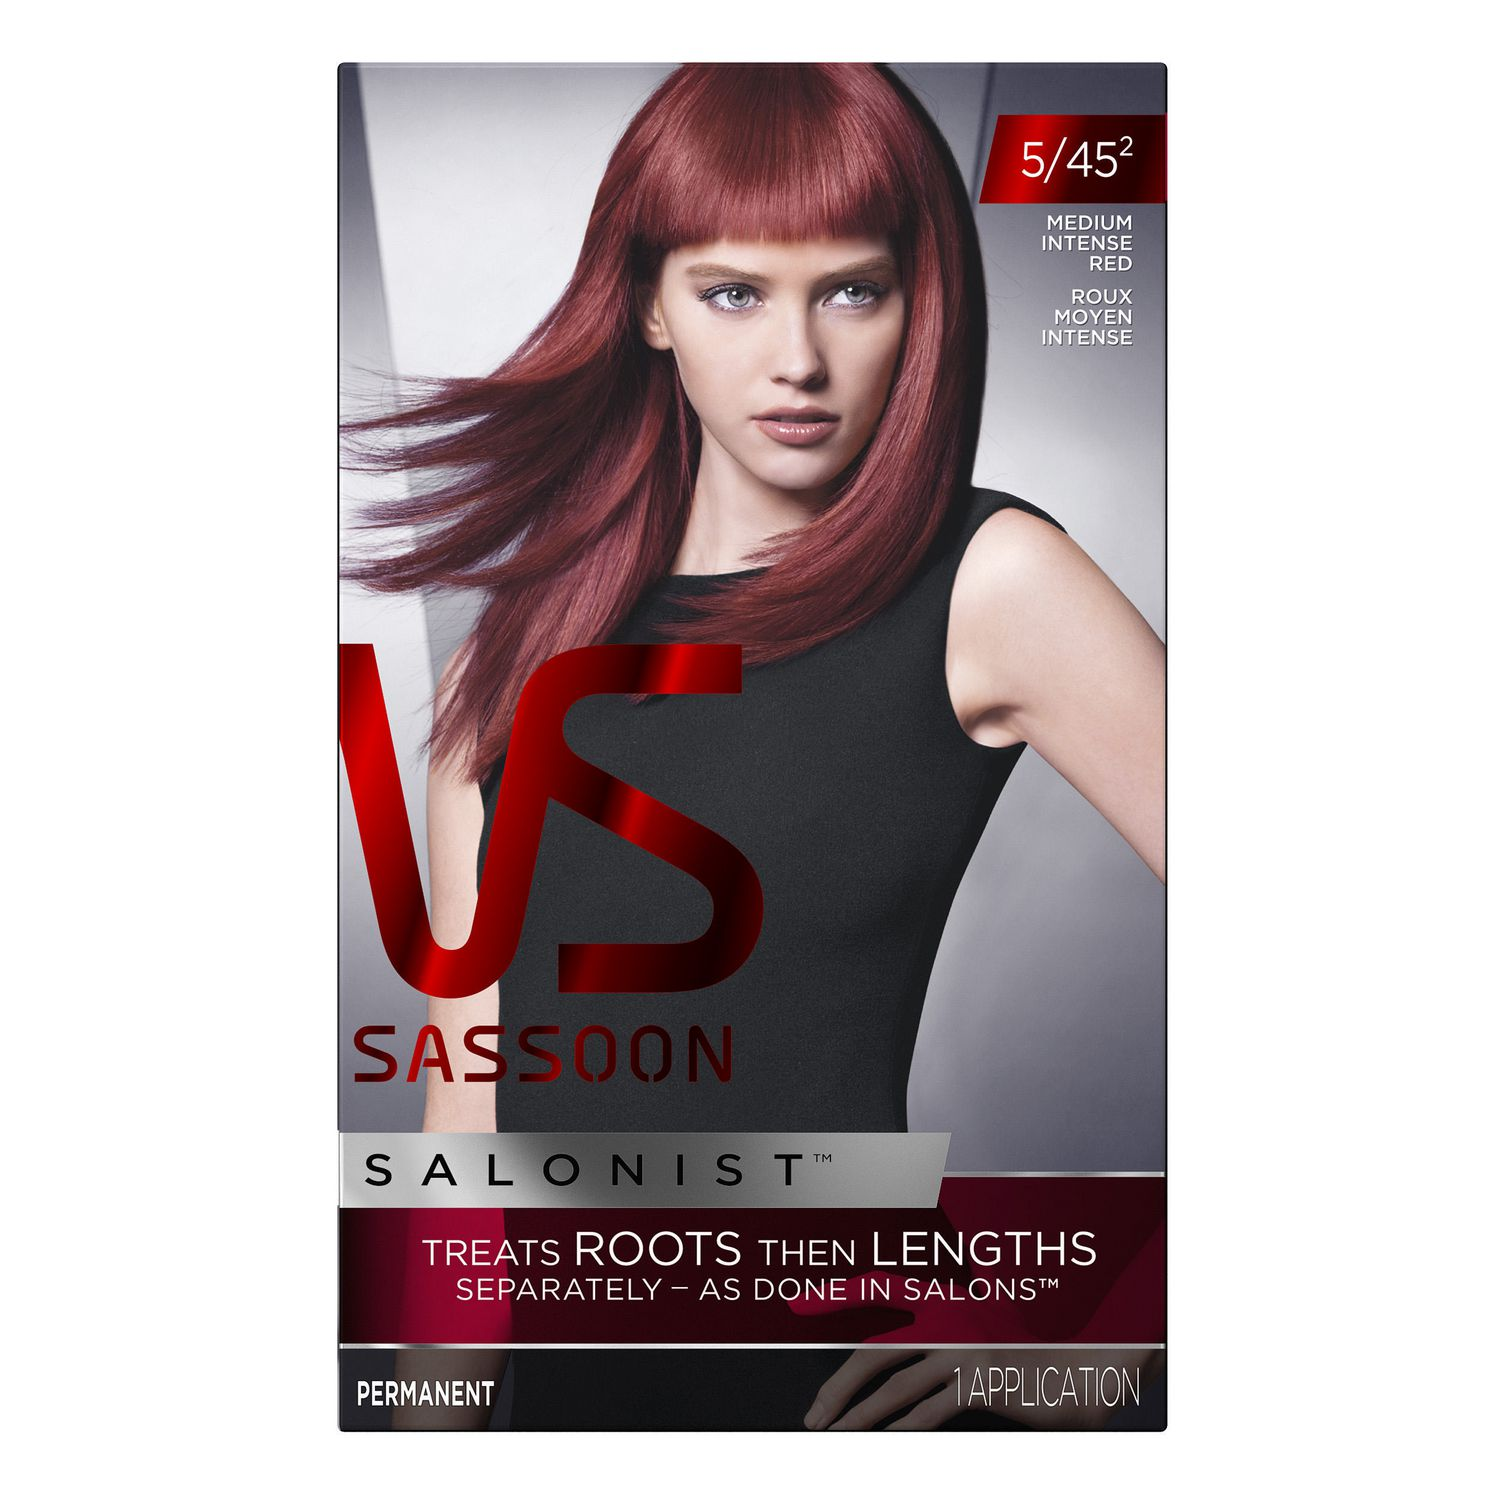 Stupendous Vidal Sassoon Salonist Hair Colour Permanent Color Walmart Ca Short Hairstyles Gunalazisus